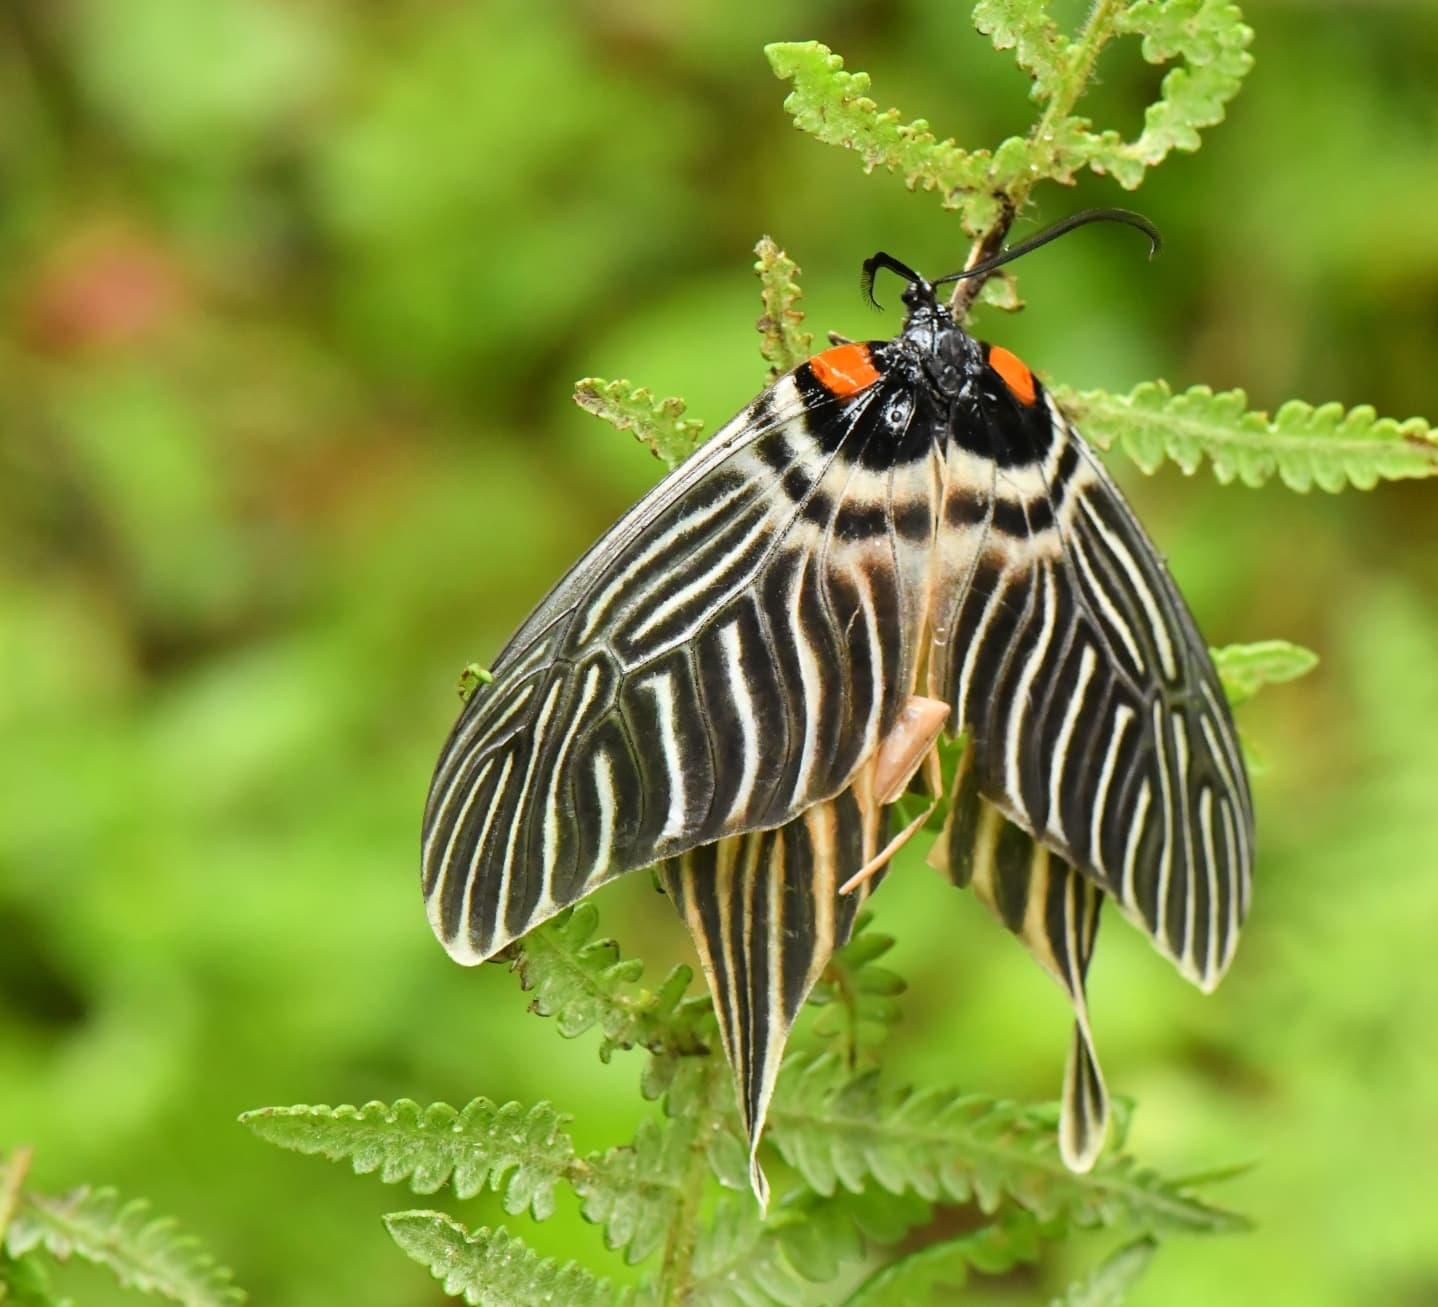 Wings of Chance: The Accidental Discovery of the Apatani Glory Moth